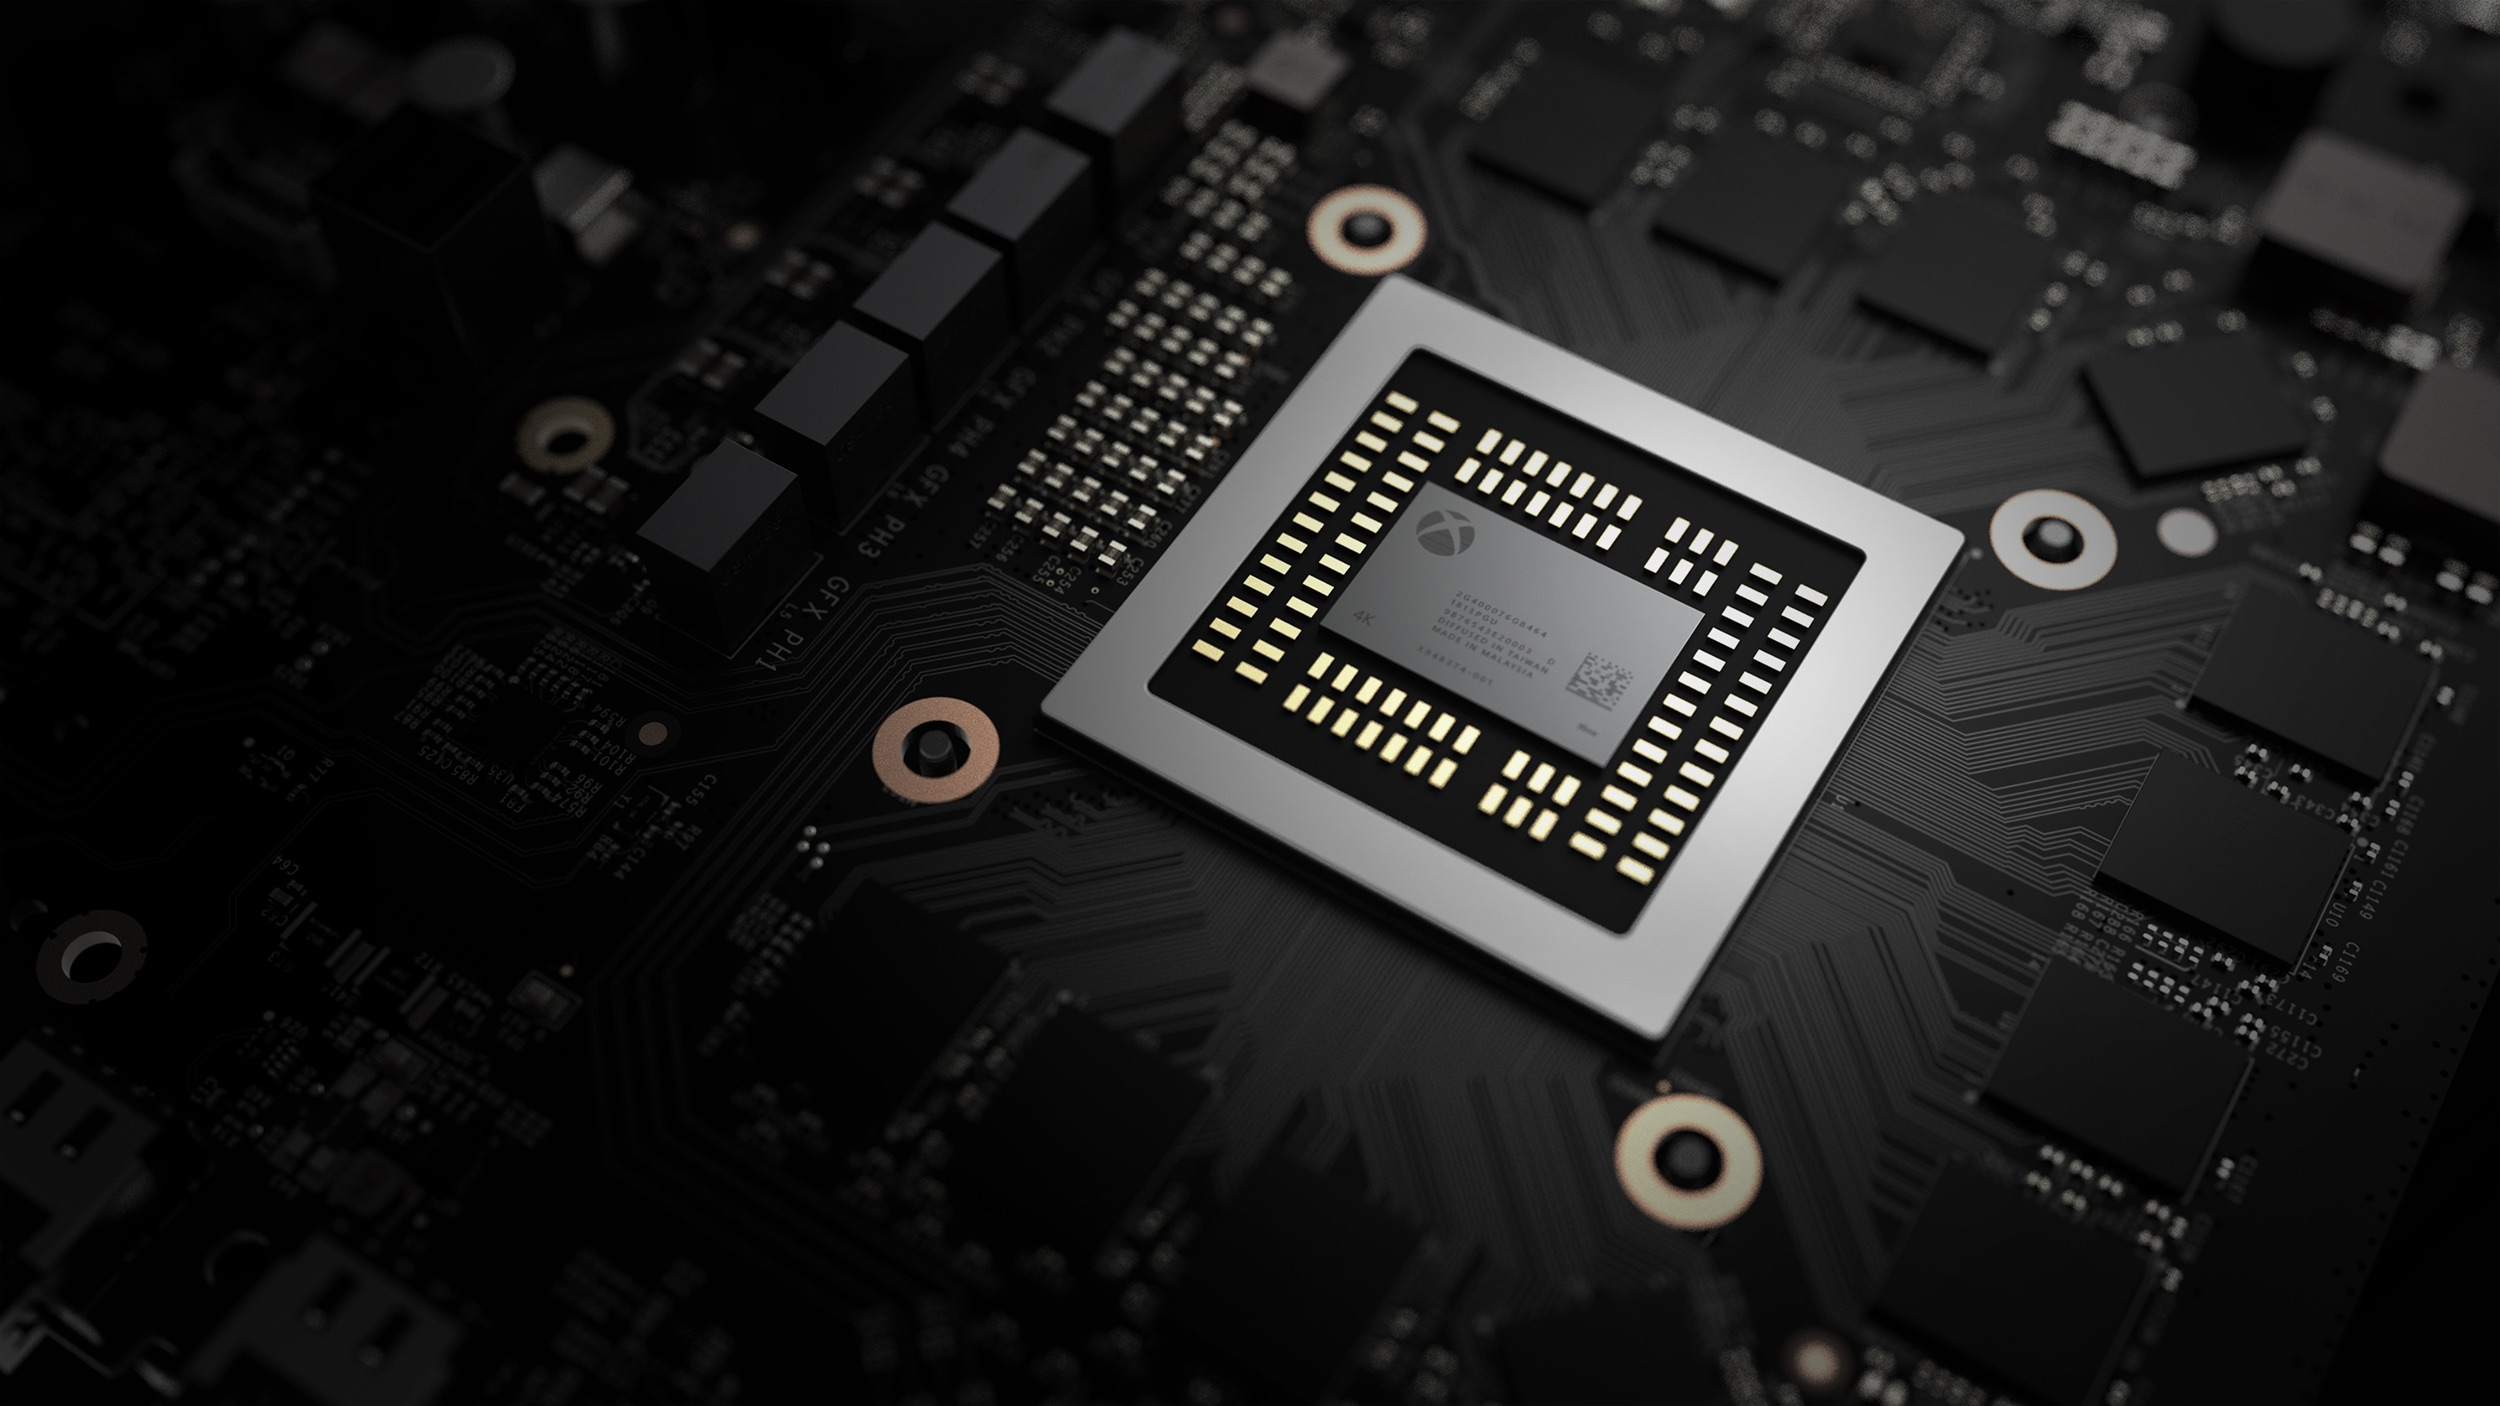 Xbox Scorpio Internal Motherboard Architecture Revealed 16nm Finfet 360 Tagged With Microsoft One